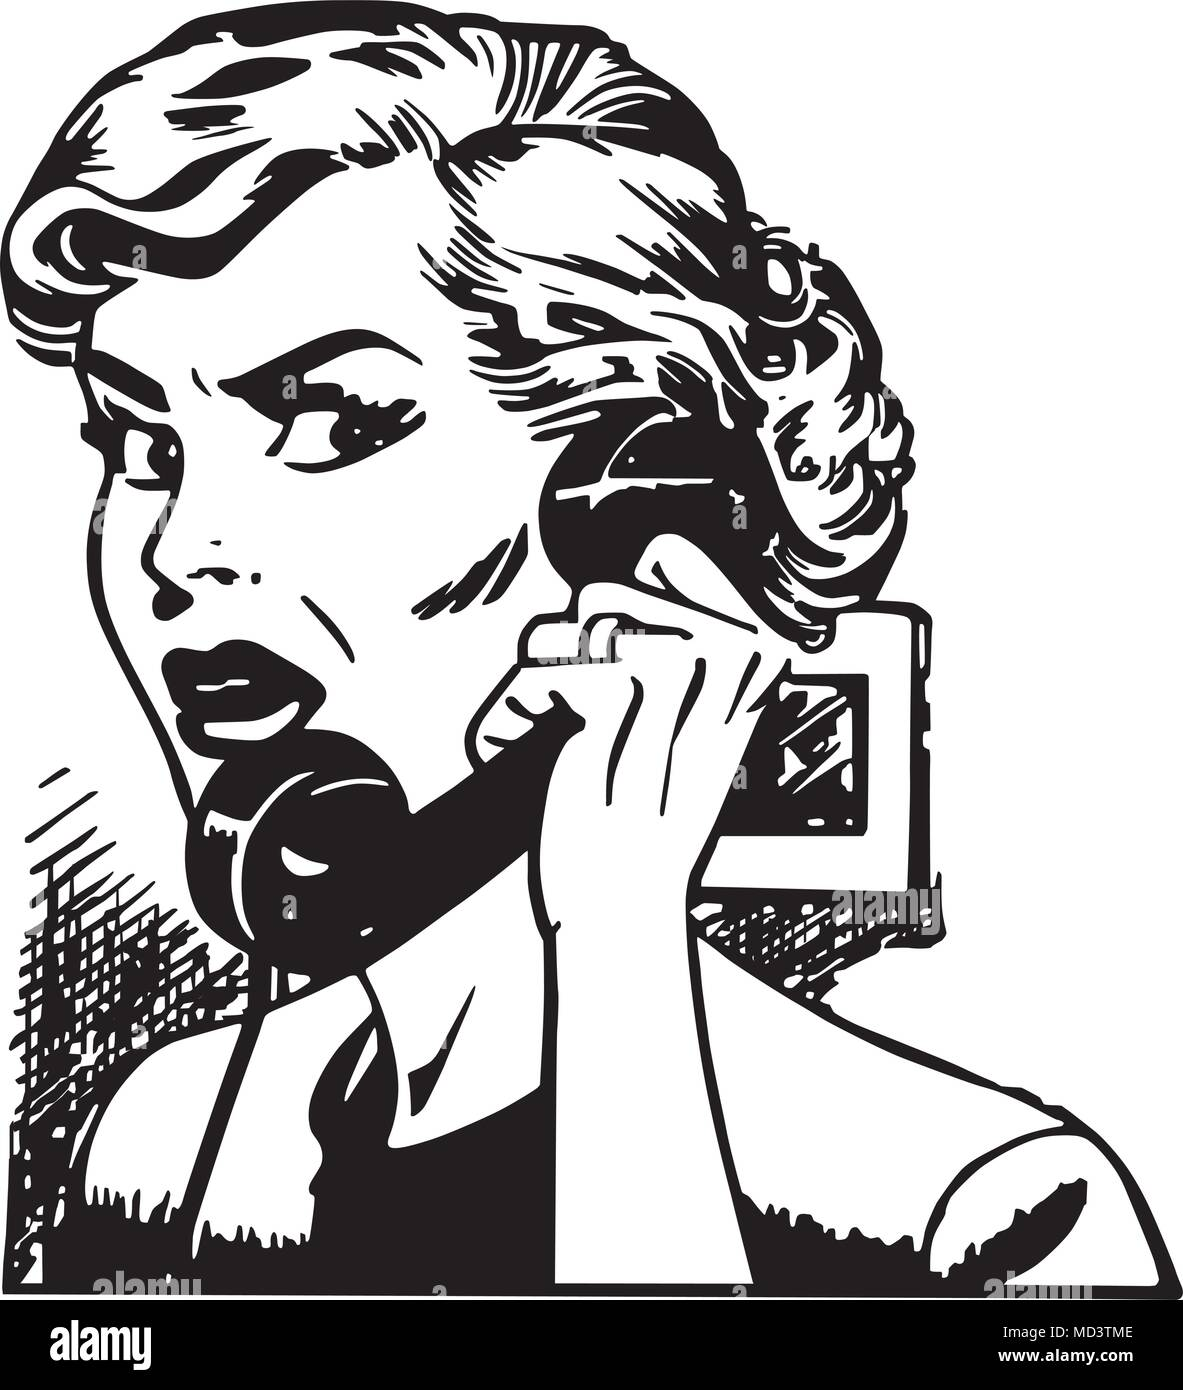 angry woman on phone retro clipart illustration stock vector art Retro Stage angry woman on phone retro clipart illustration